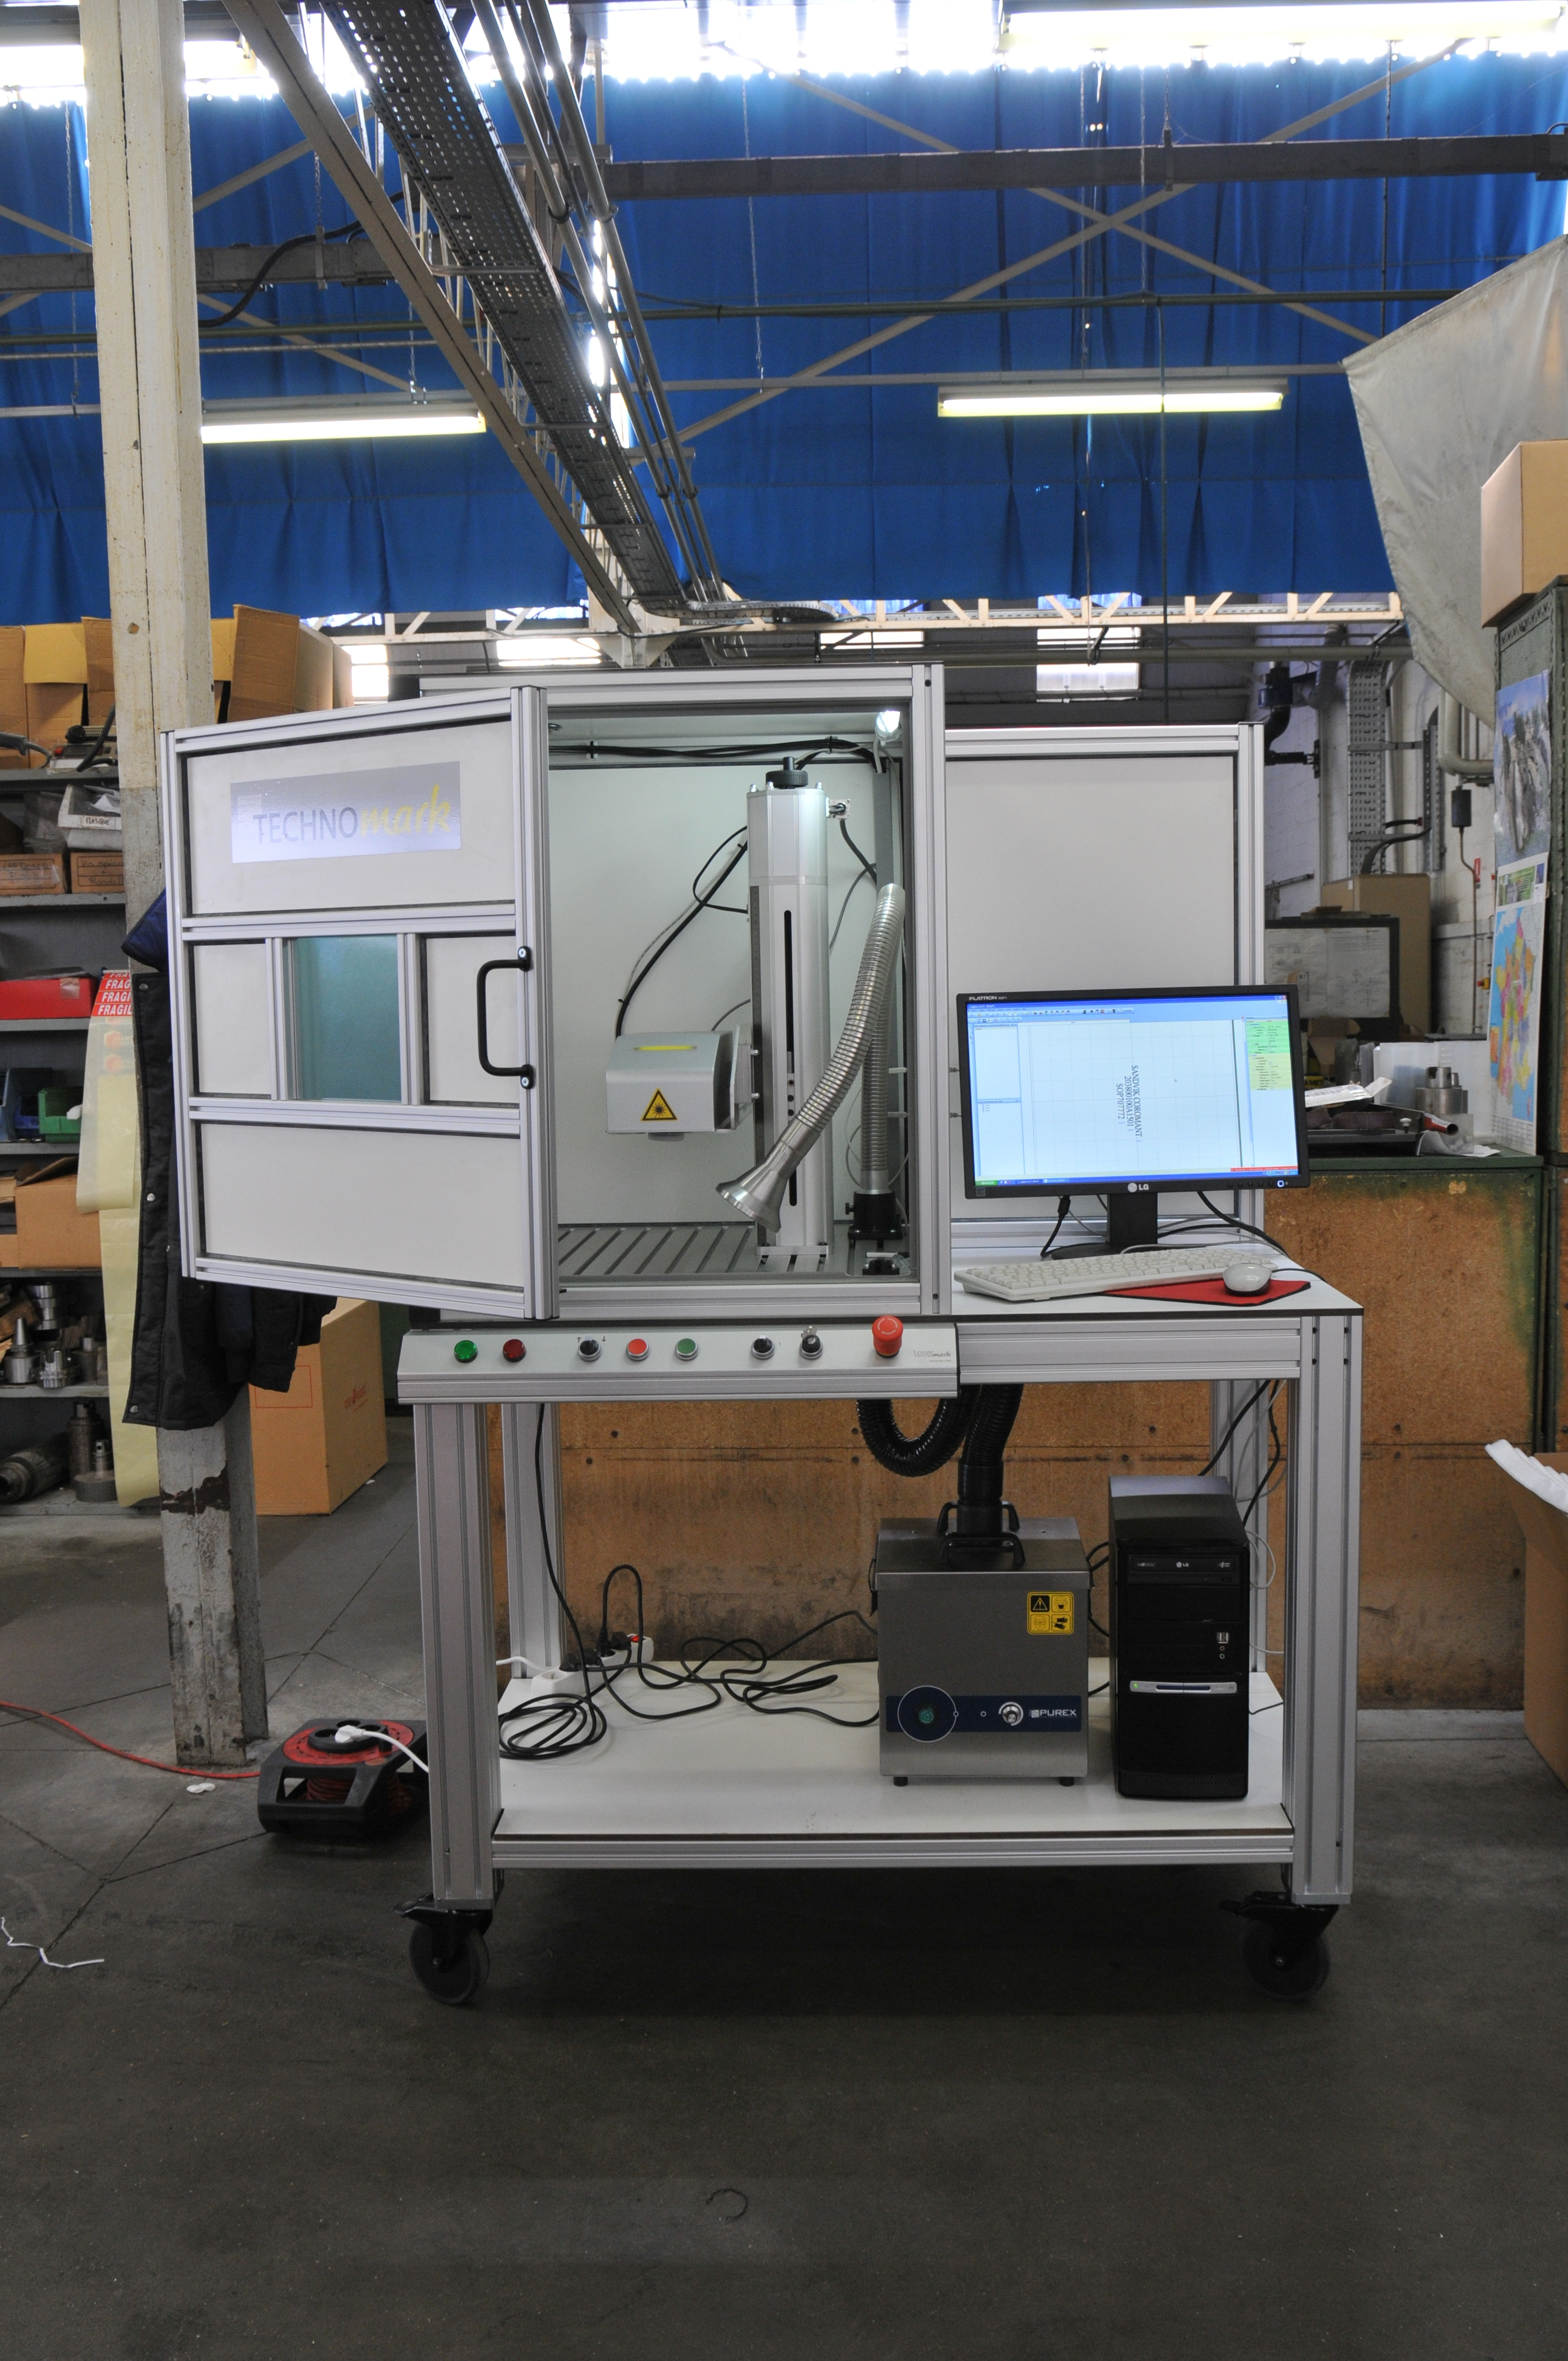 Personalized-cutting-tools-laser-station